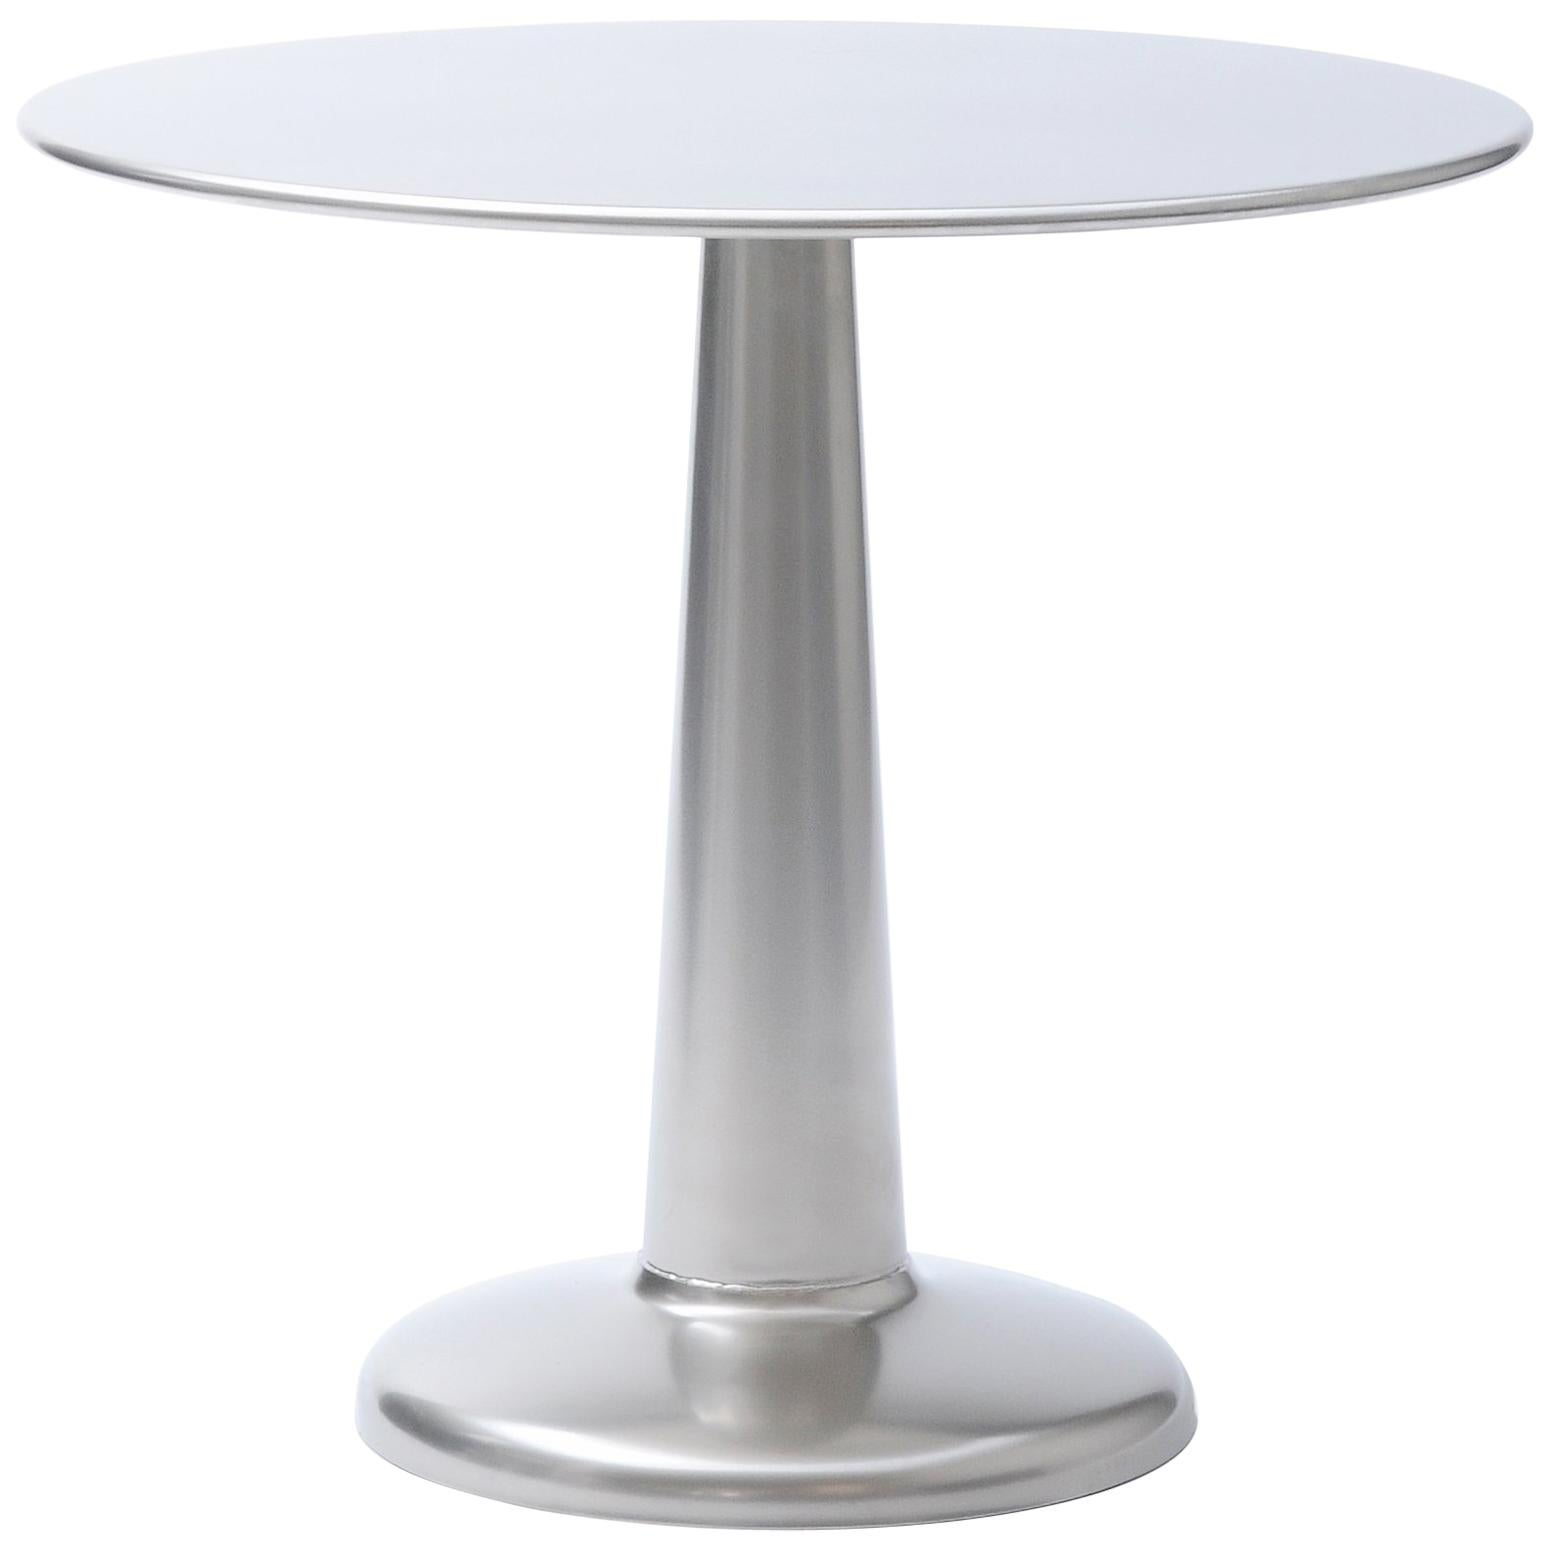 G Table 80 in Essential Colors by Chantal Andriot & Tolix